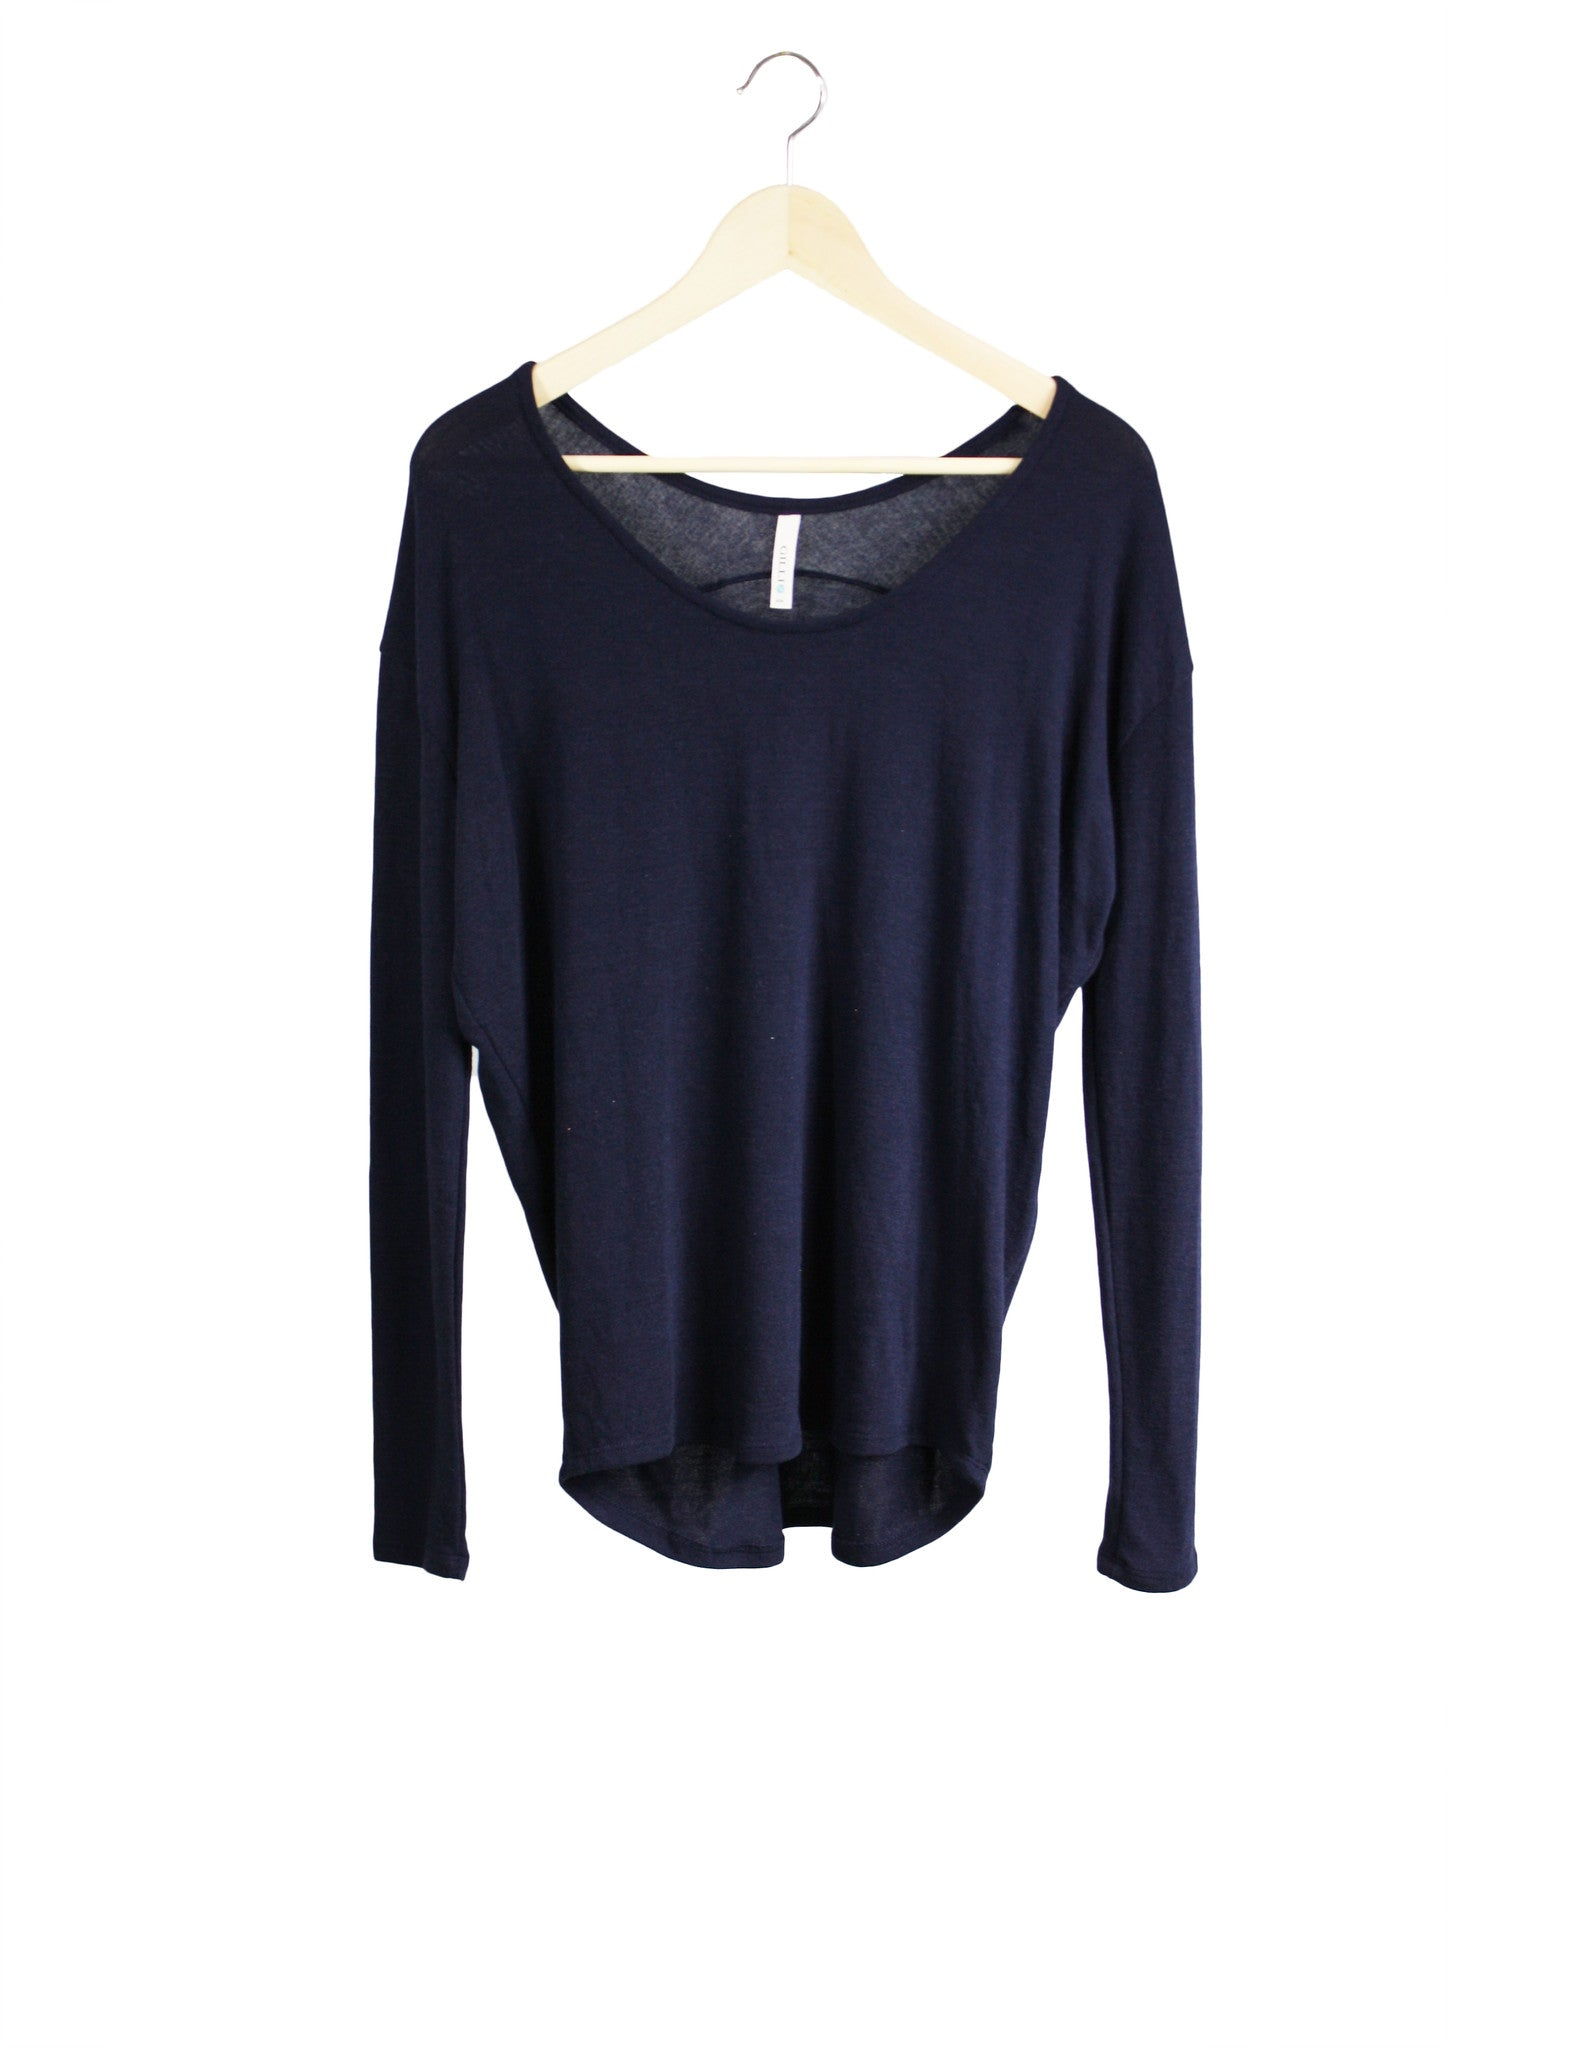 Navy Long-Sleeve Top / Ethical Fashion